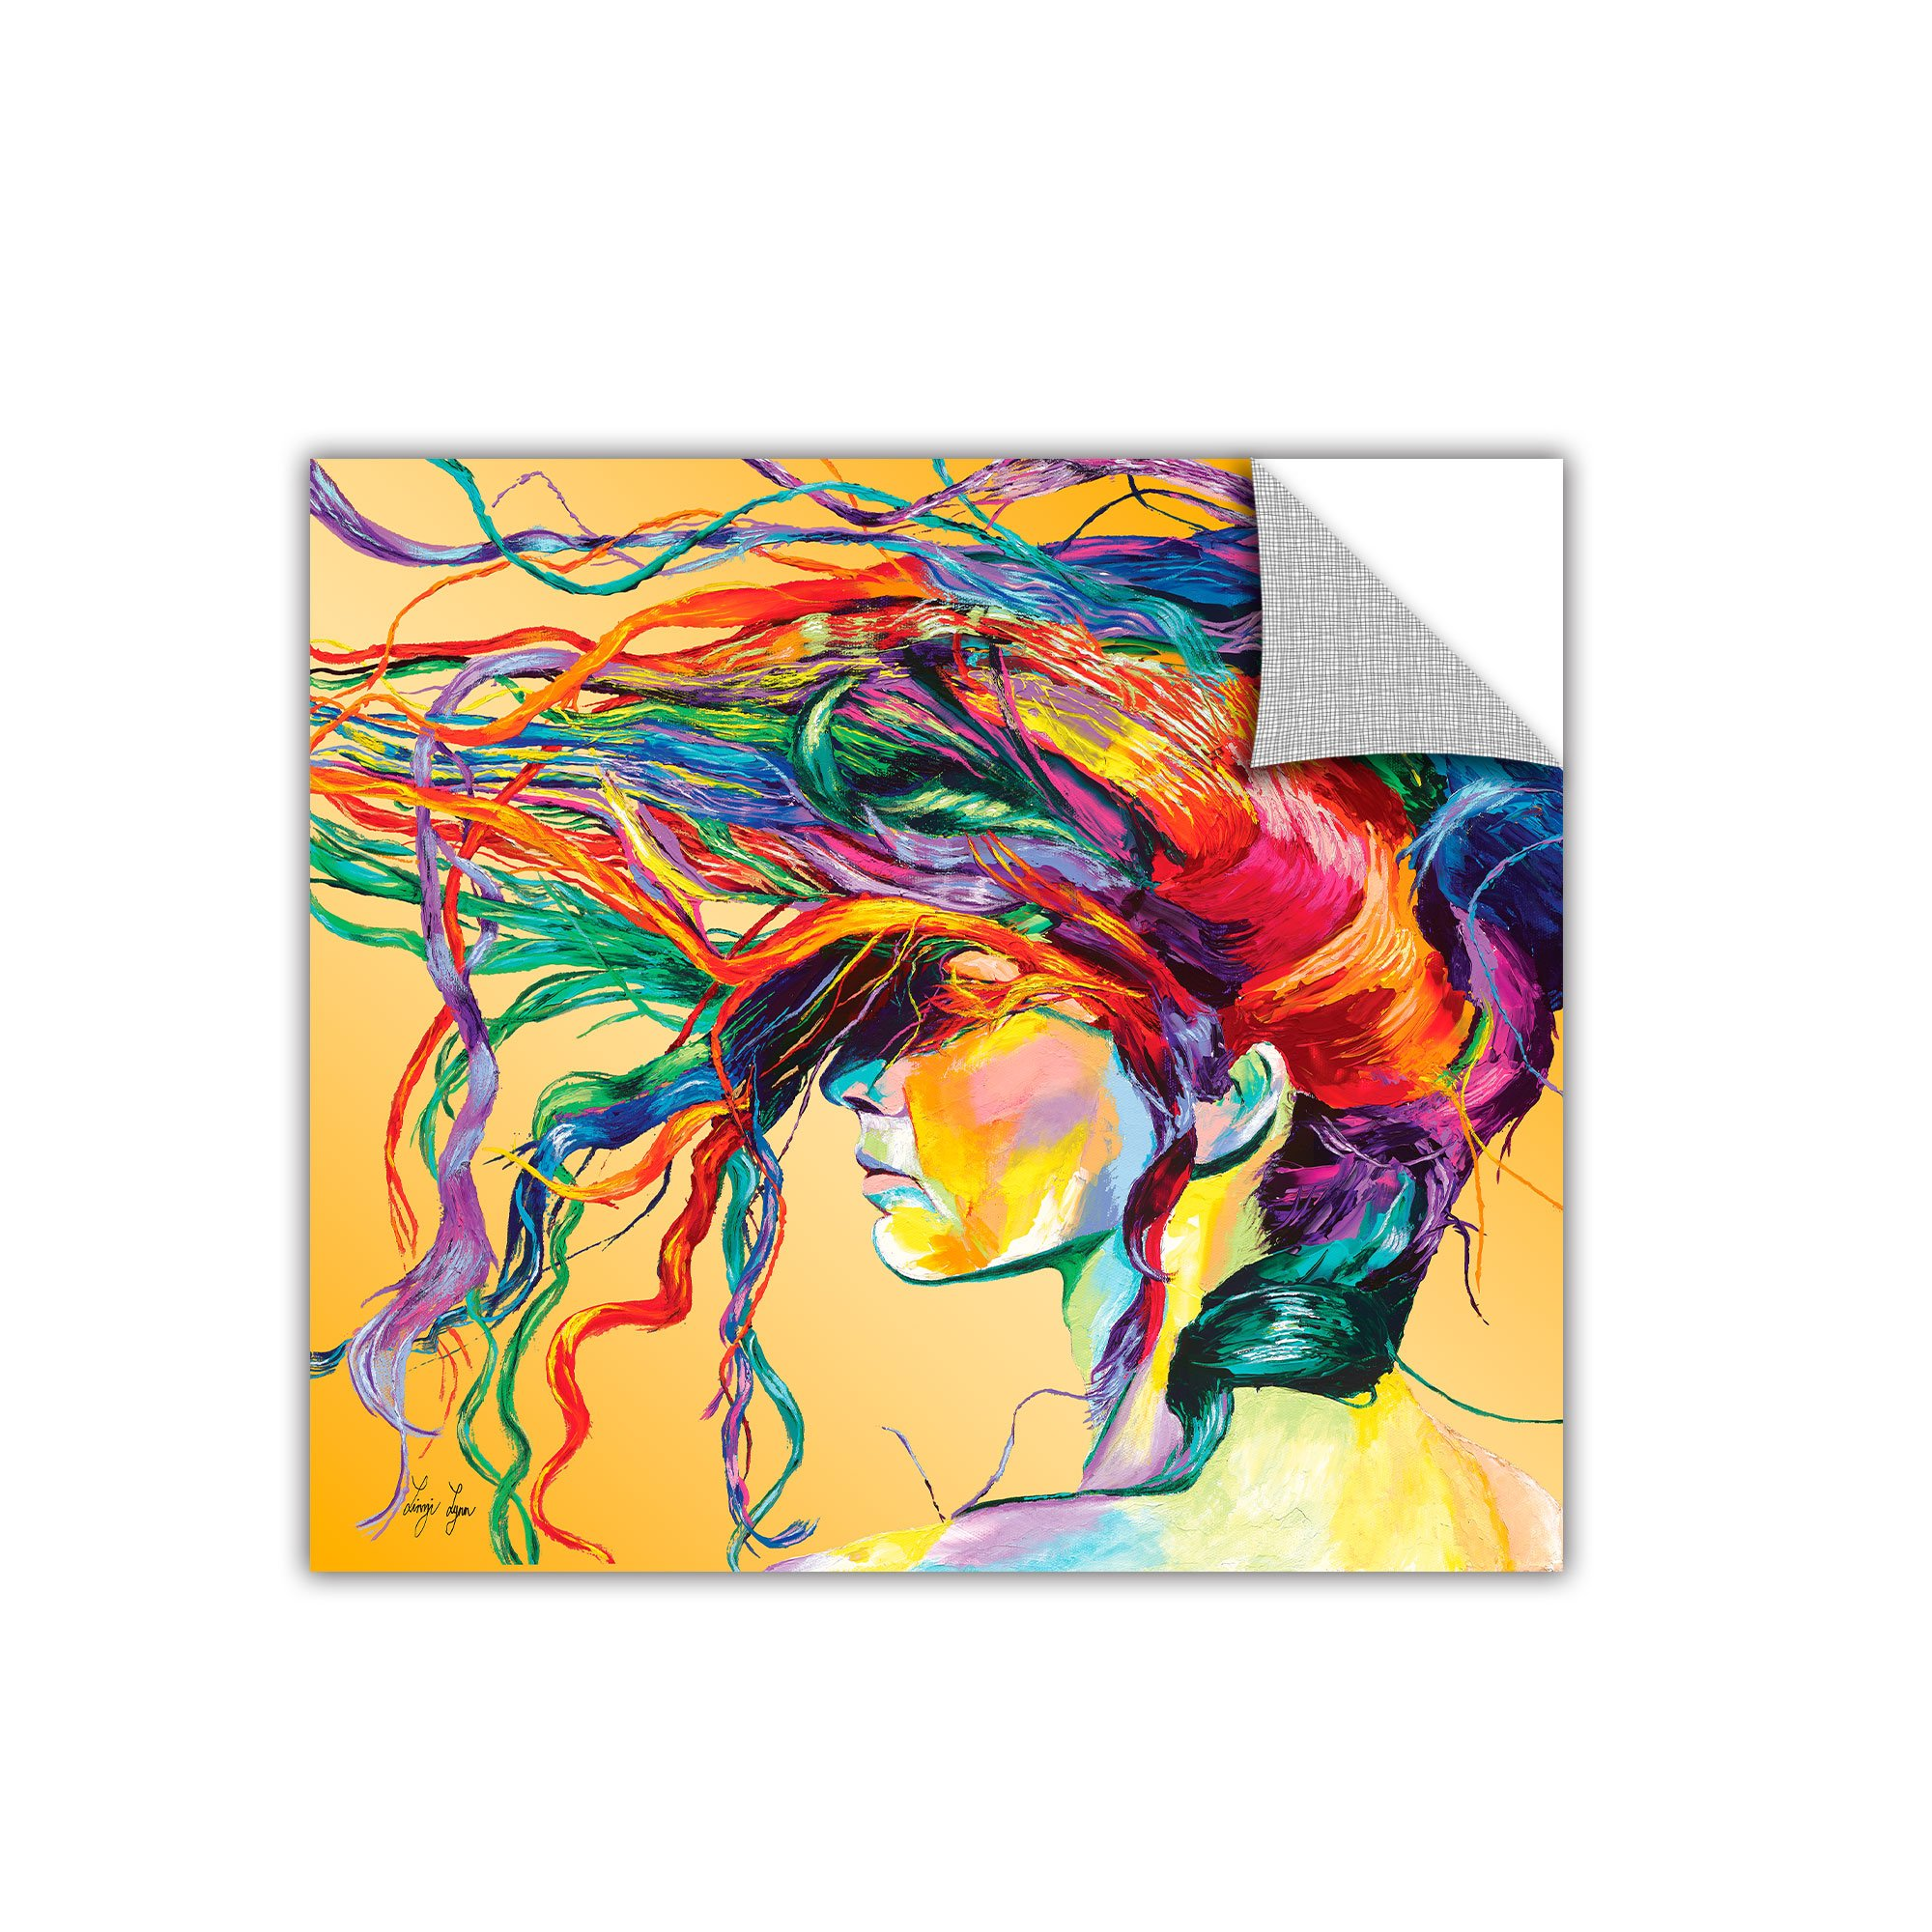 ArtWall 'Windswept' Removable Wall Art by Linzi Lynn, 14 by 14-Inch